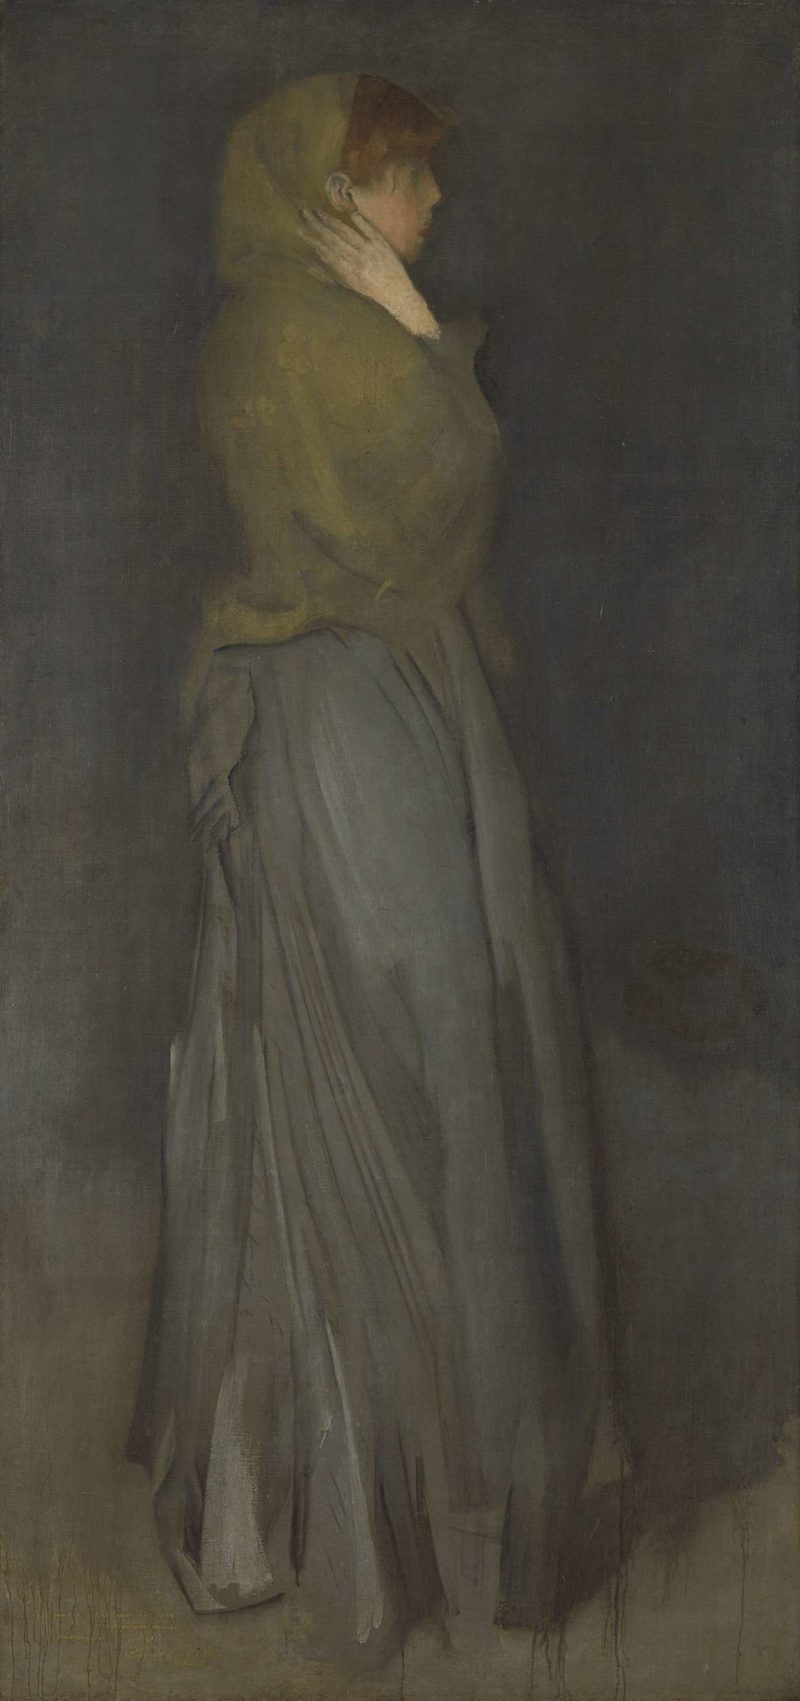 Arrangement in Yellow and Gray: Effie Deans. ca. 1876 - ca. 1878 | James Abbott McNeill Whistler | oil painting